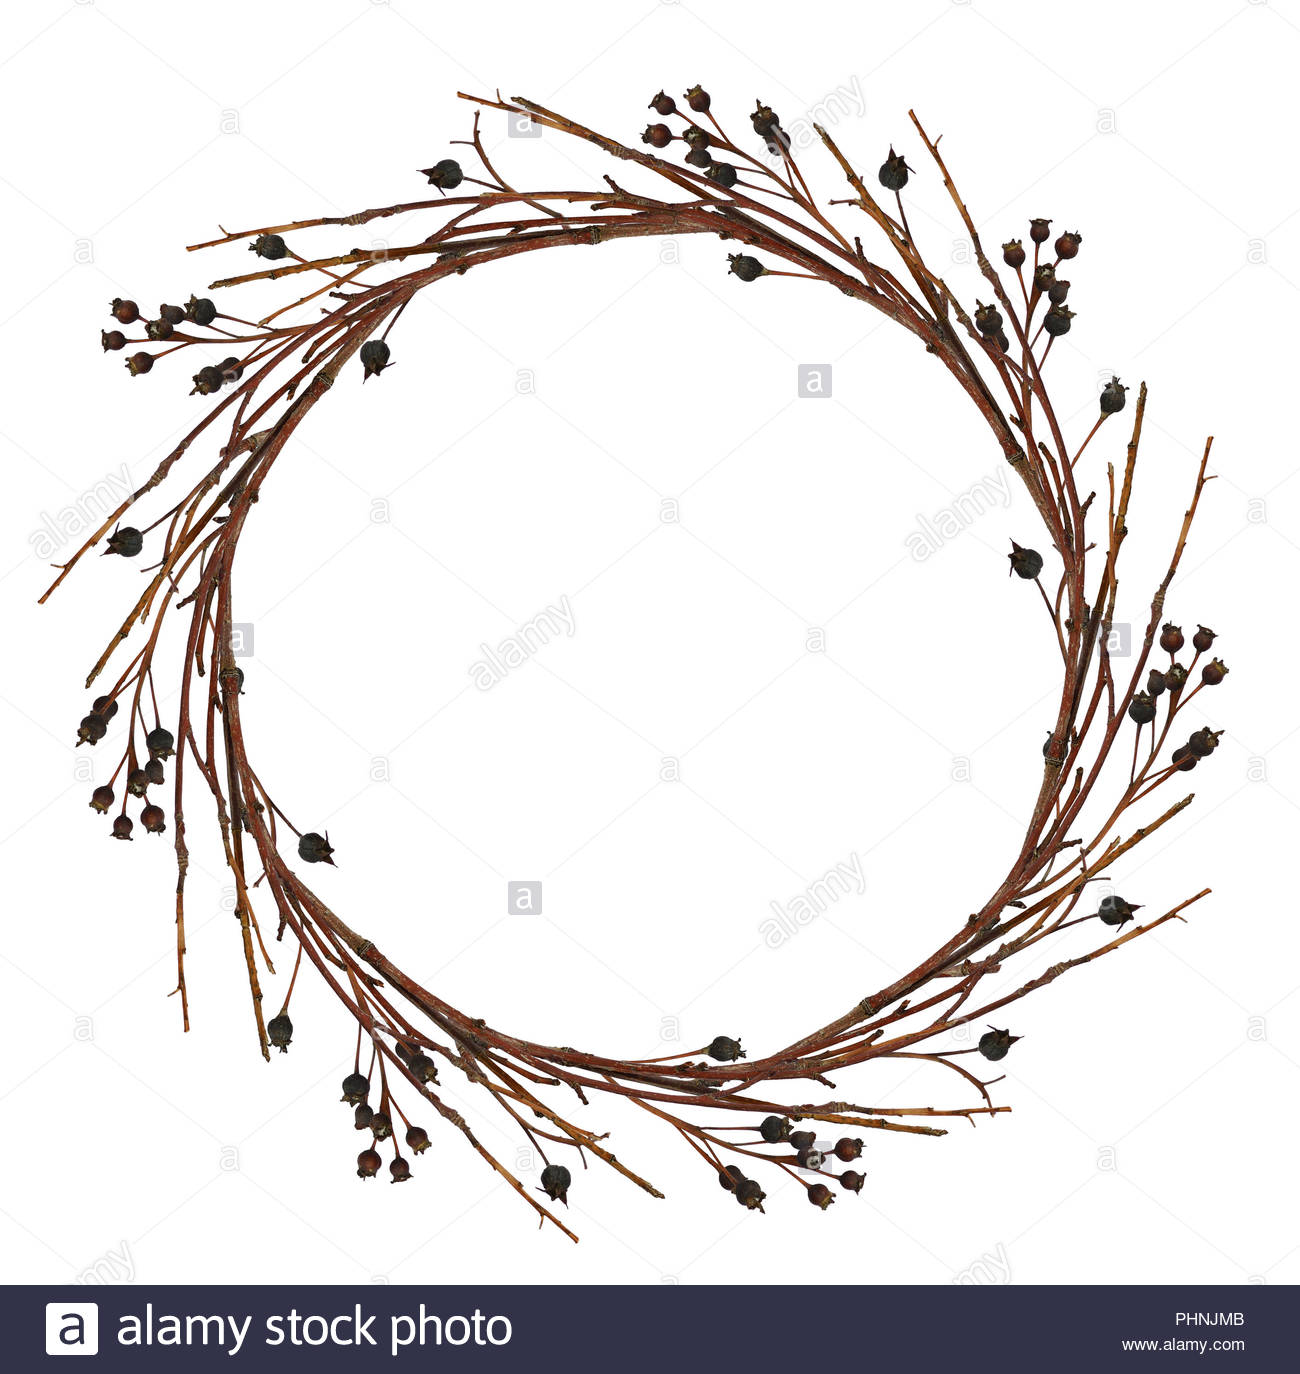 Round wreath from dry twigs with black berries isolated on white 1300x1374